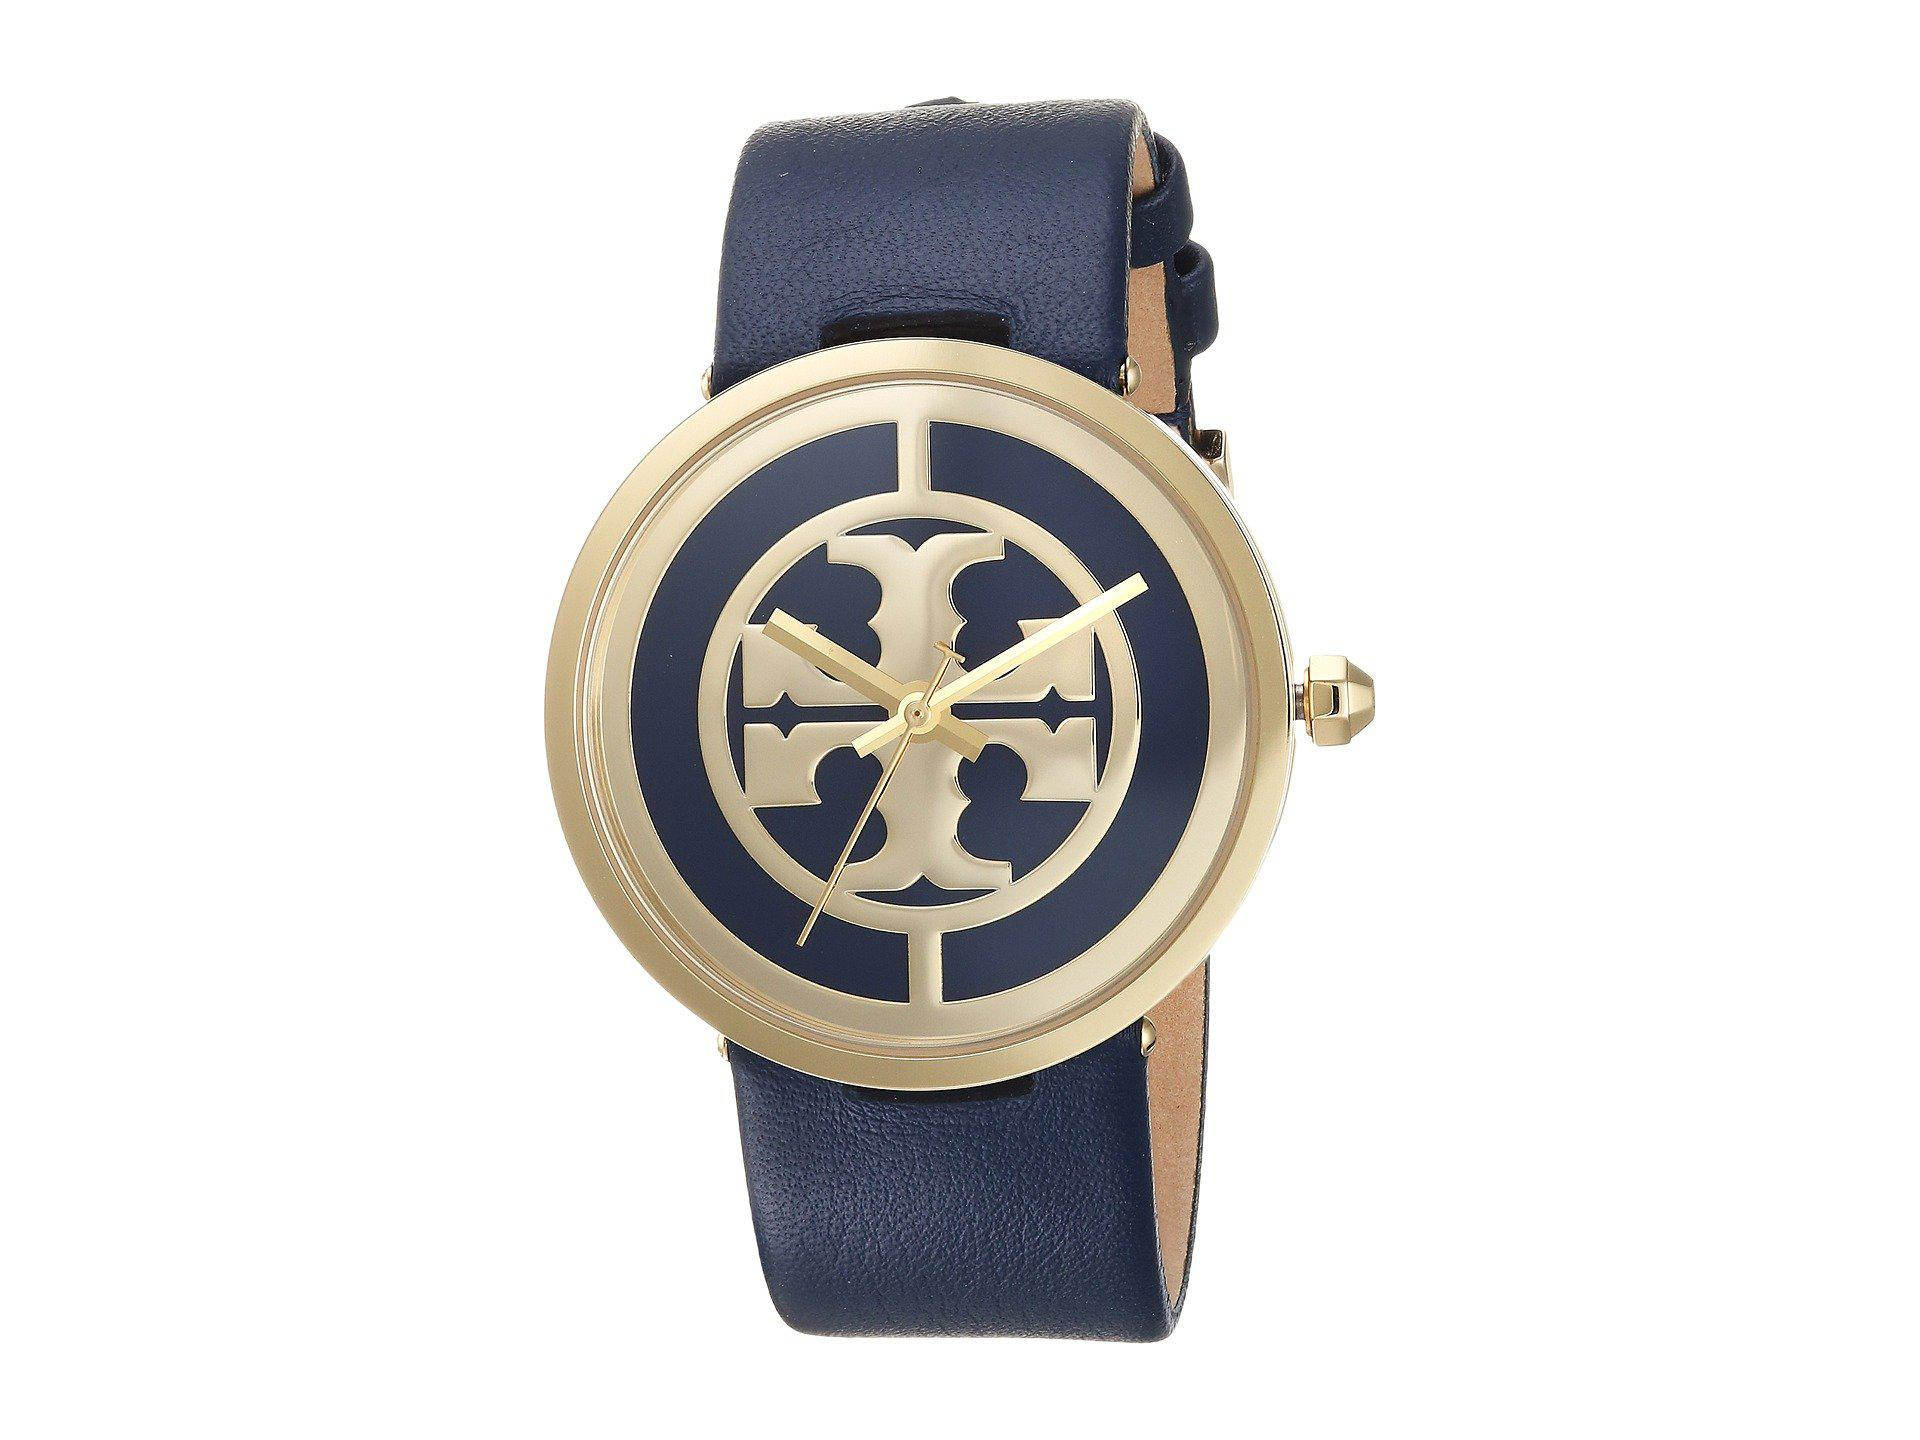 687bf1f6d93 Lyst - Tory Burch Reva - Tbw4021 (blue) Watches in Blue